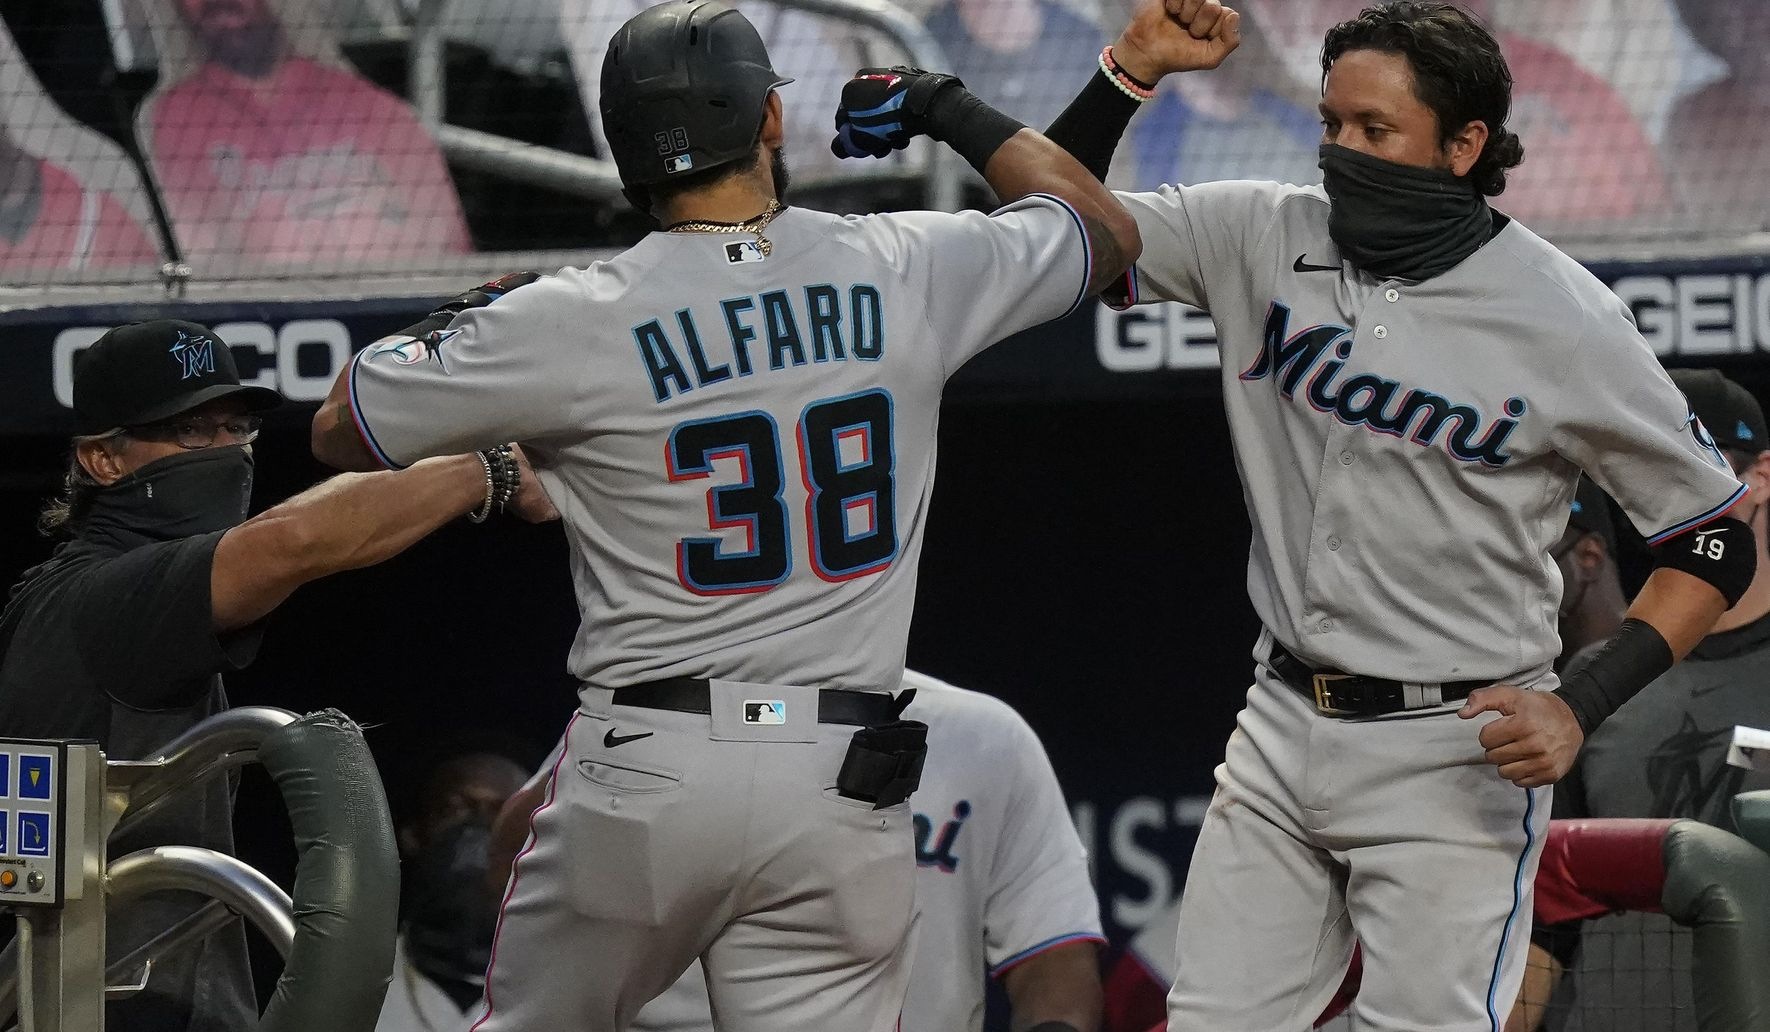 Marlins_braves_baseball_85015_c0-140-3350-2093_s1770x1032